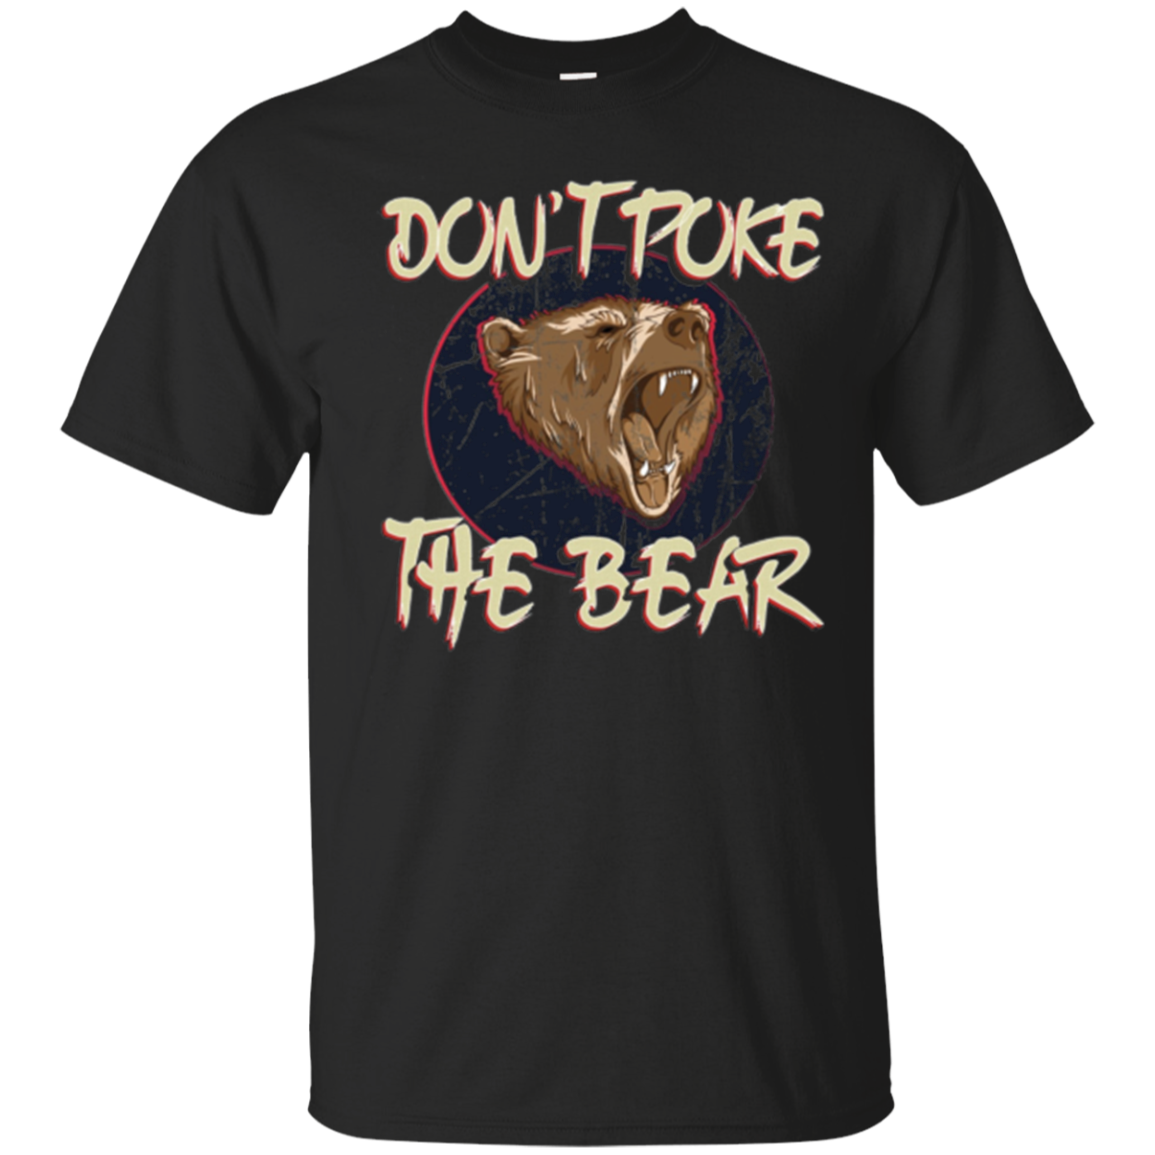 Don't Poke The Bear, Tshirt for Men Women and Kids